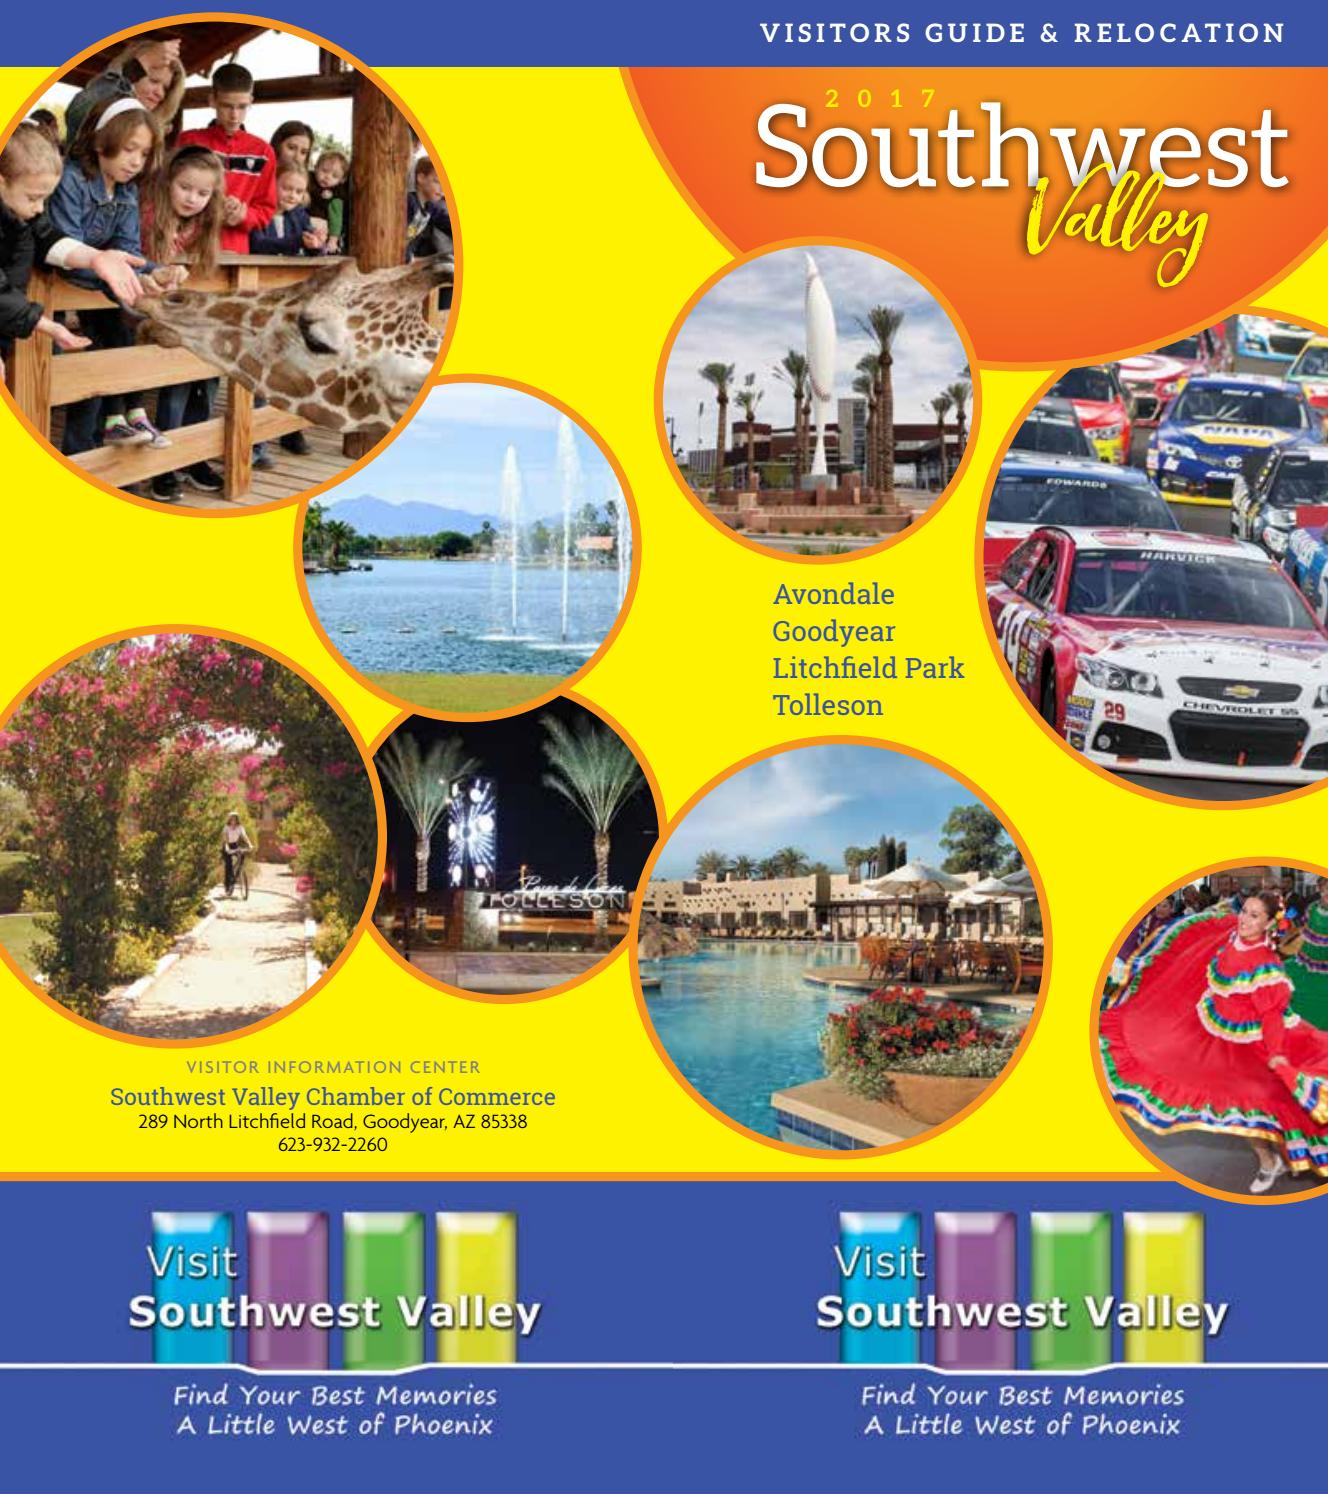 dfdd74902 Southwest Valley Visitors Guide & Relocation by ROX Media Group - issuu